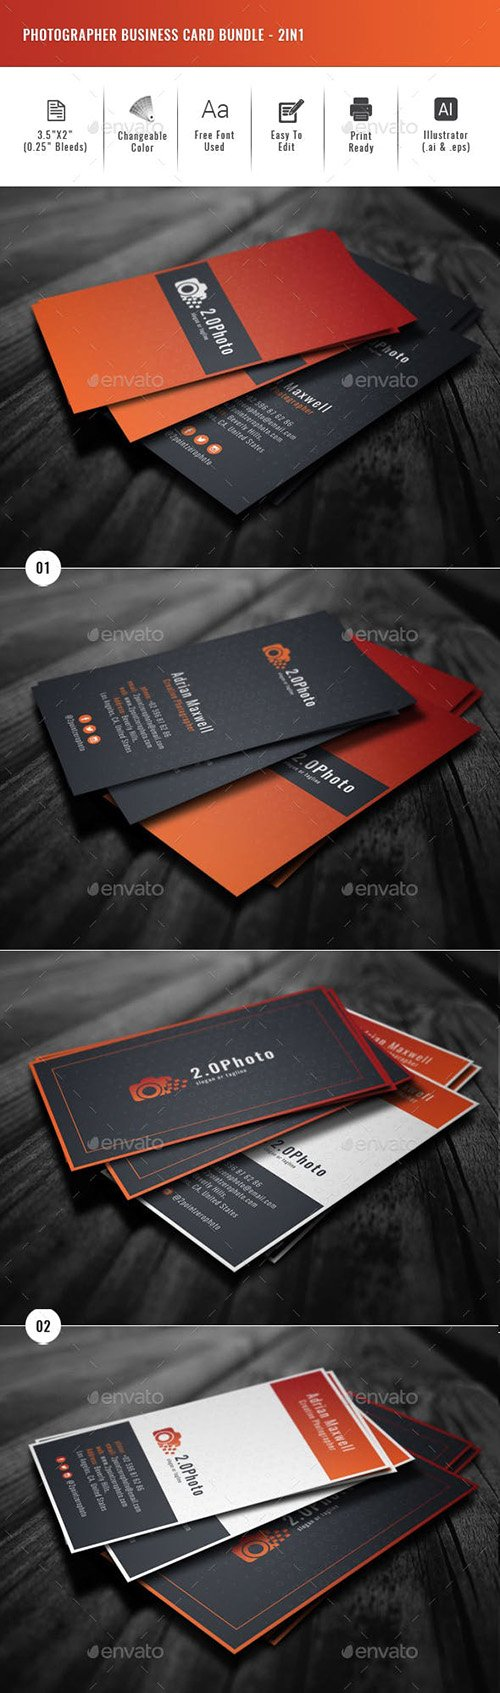 GraphicRiver - Photographer Business Card Bundle - 2in1 22673982